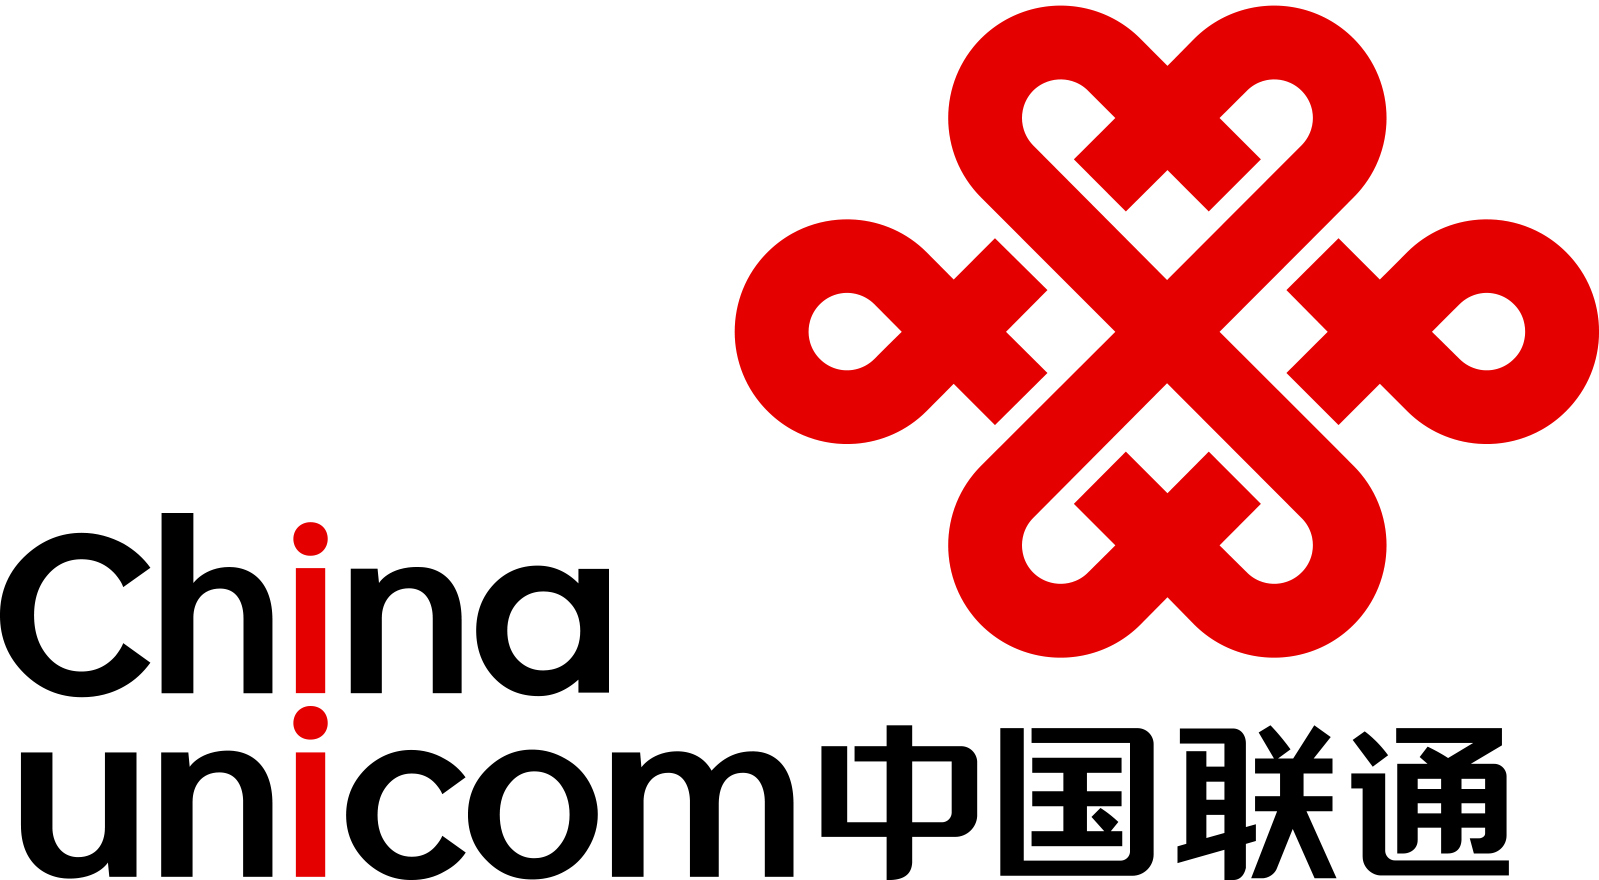 China Unicom (Europe) Operations Limited